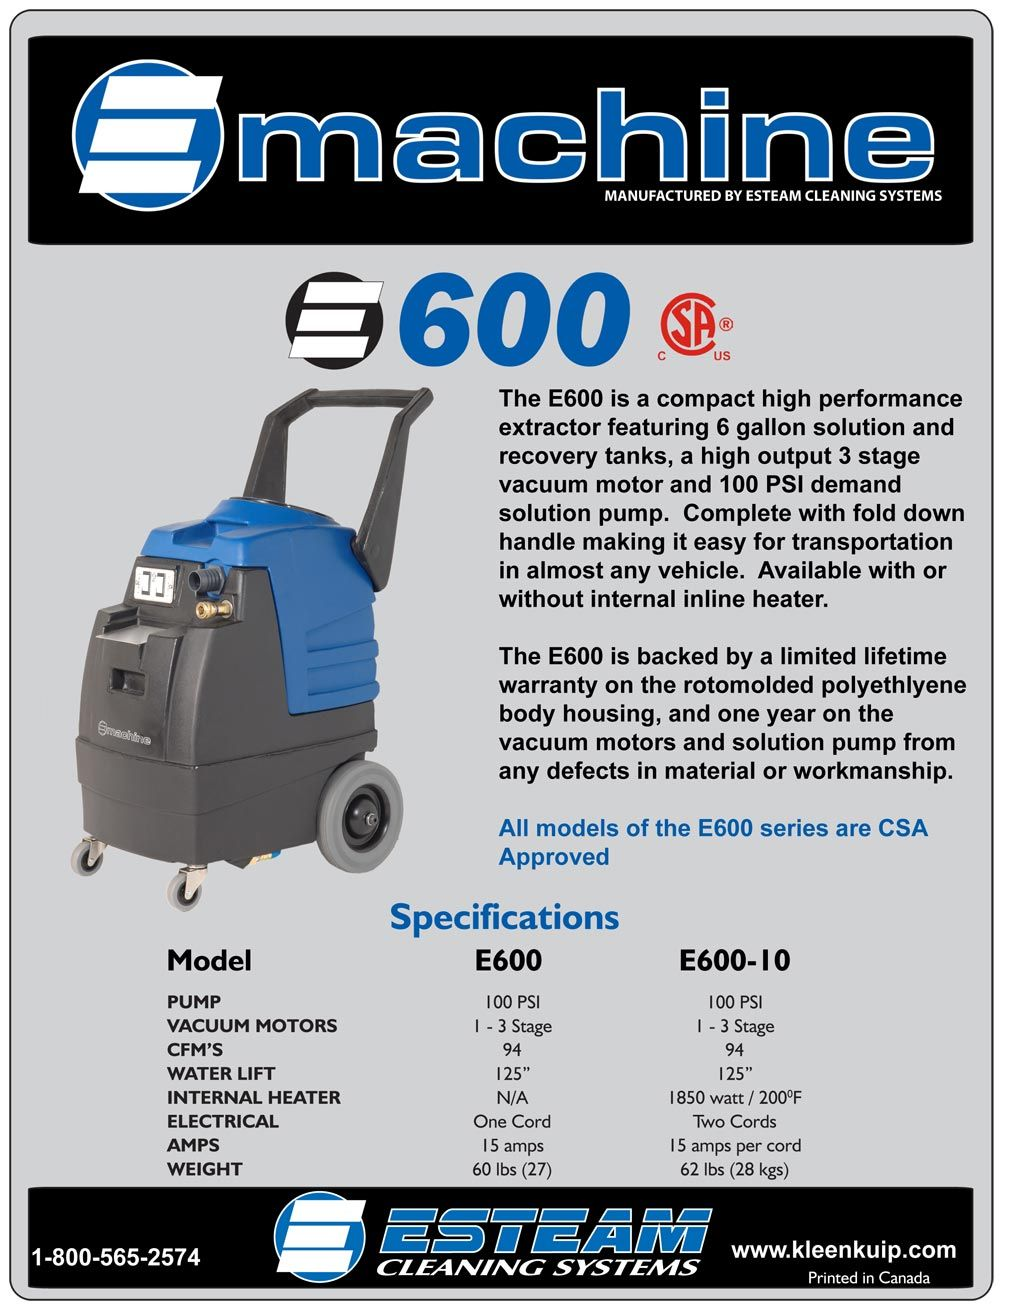 The E600 is a professional strength hot water upholstery